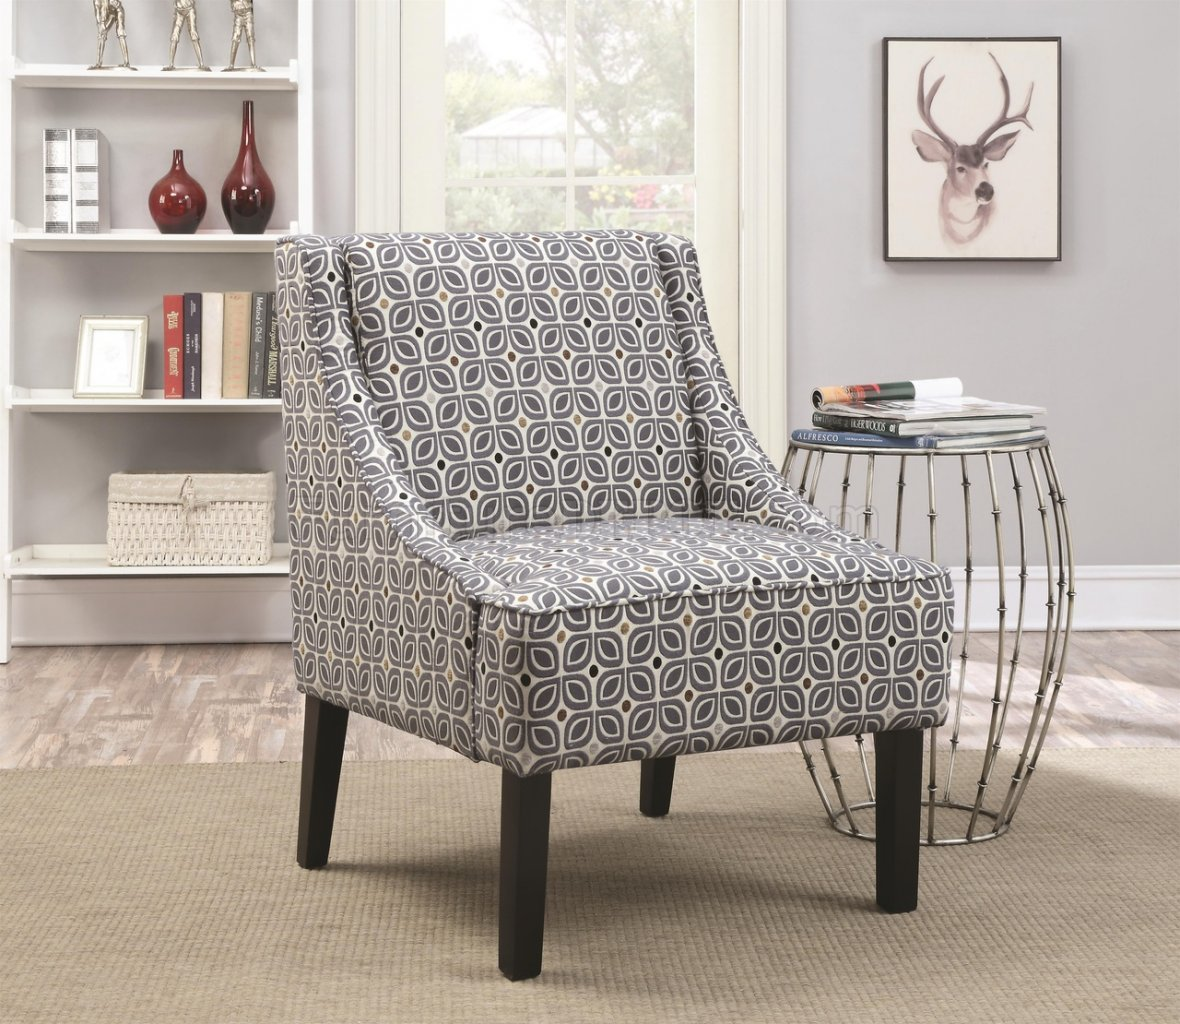 Set Of Accent Chairs 902604 Accent Chair Set Of 2 In Fabric By Coaster